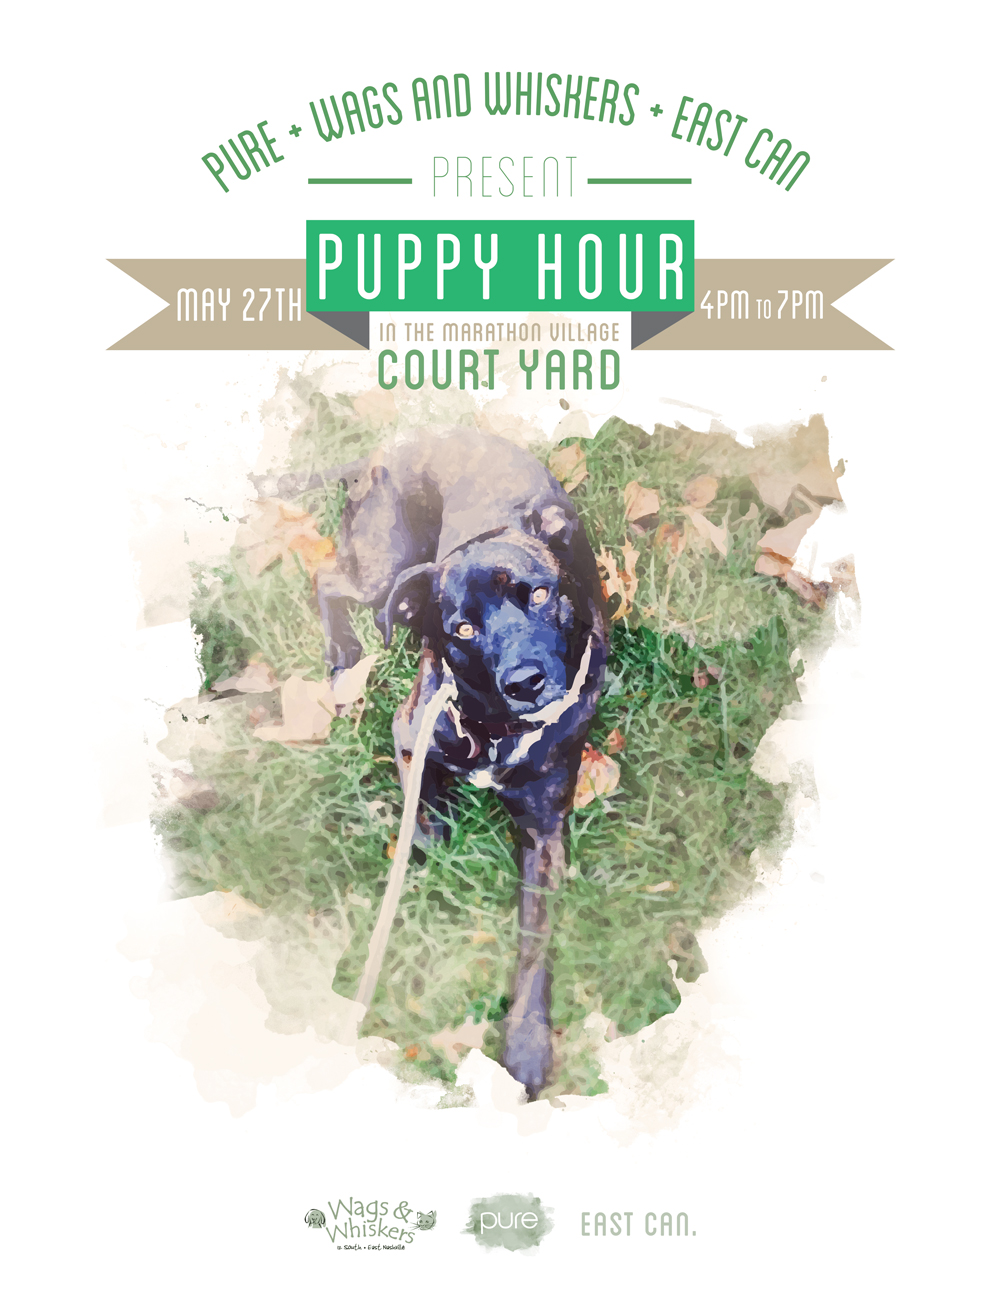 Bring your pups or adopt one! Come hang with us for happy hour two for one at Corsier Distillery and or ice cream floats at Soda Parlour! We will have giveaways and a super awesome raffle! Just Wags & Whiskers, East Can and Pure for Puppy hour!